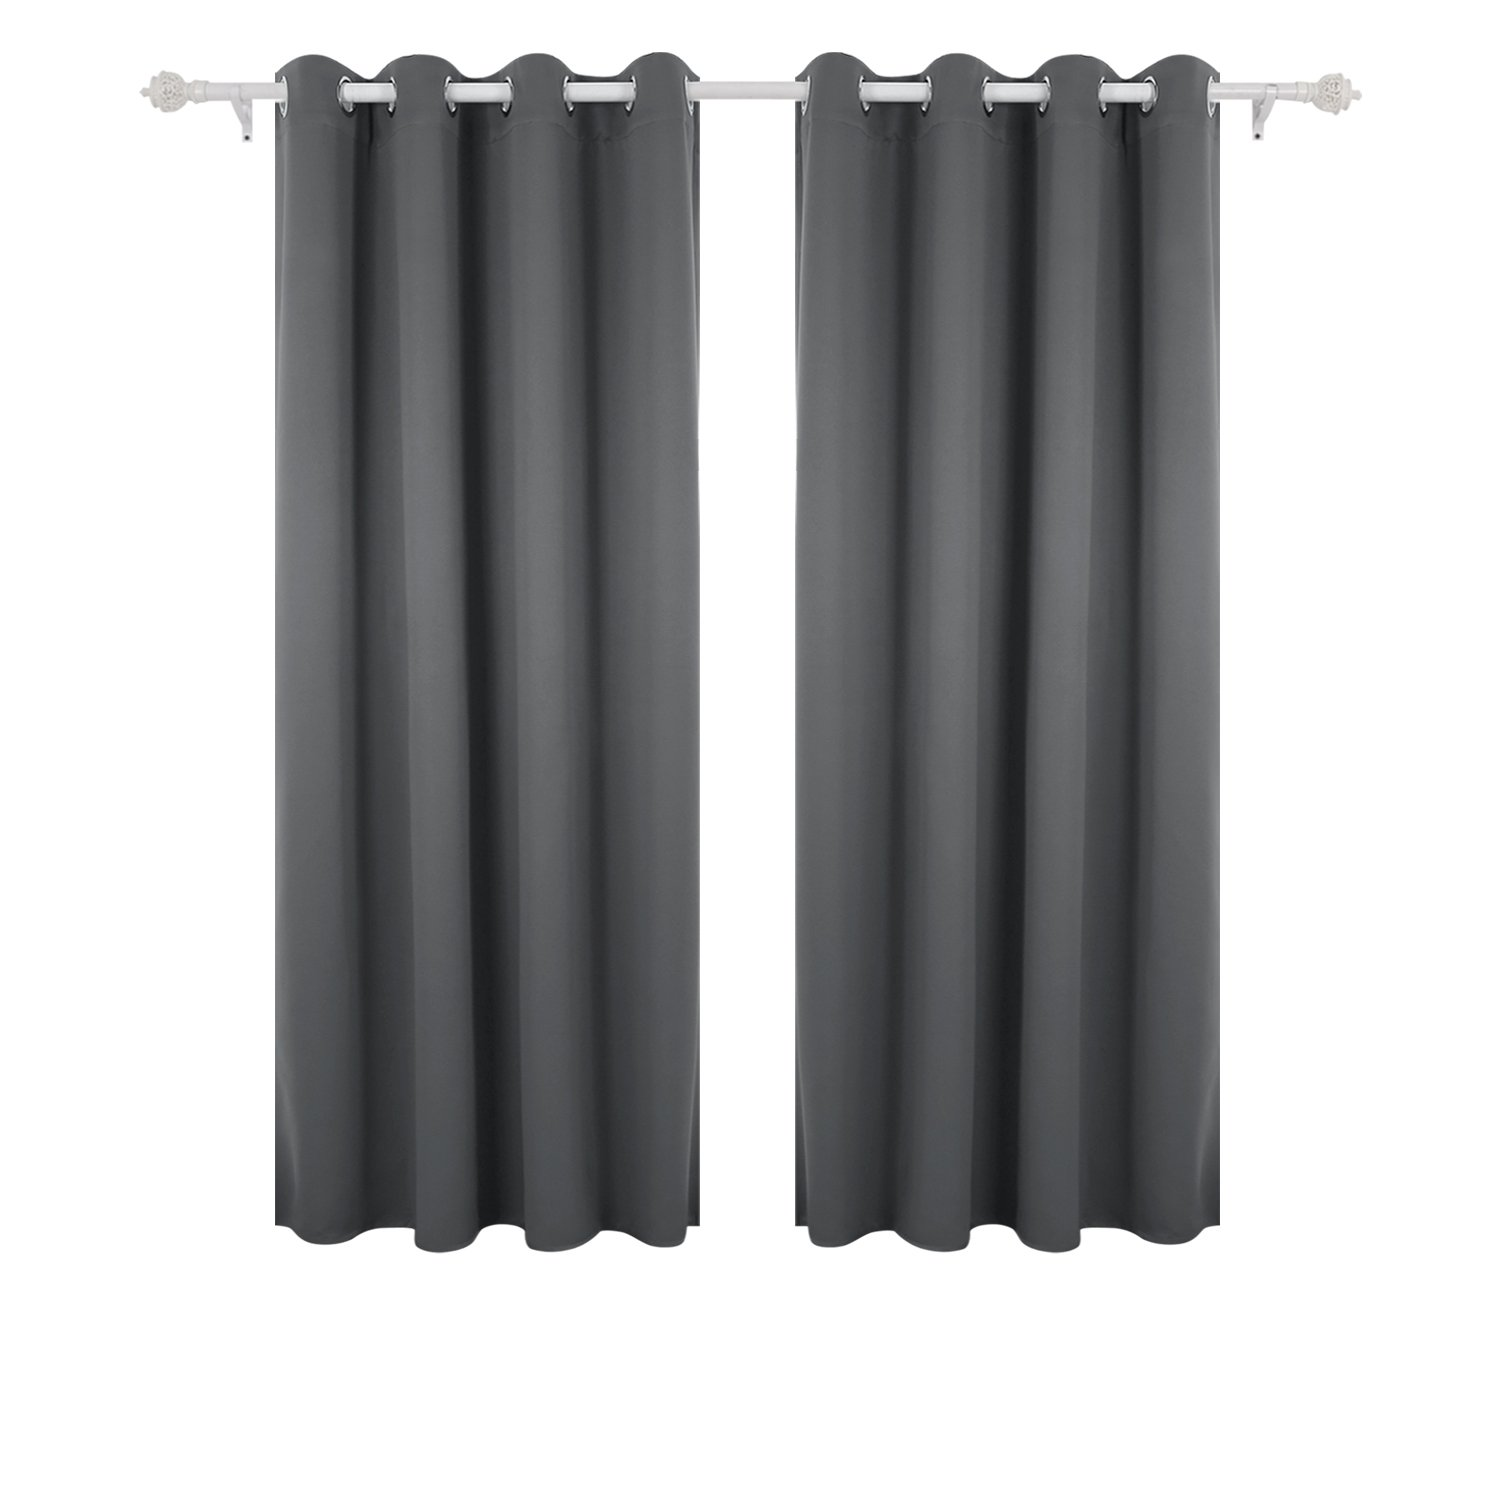 Deconovo Thermal Insulated Bedroom Blackout Curtains Ring Top For Kids With Two Matching